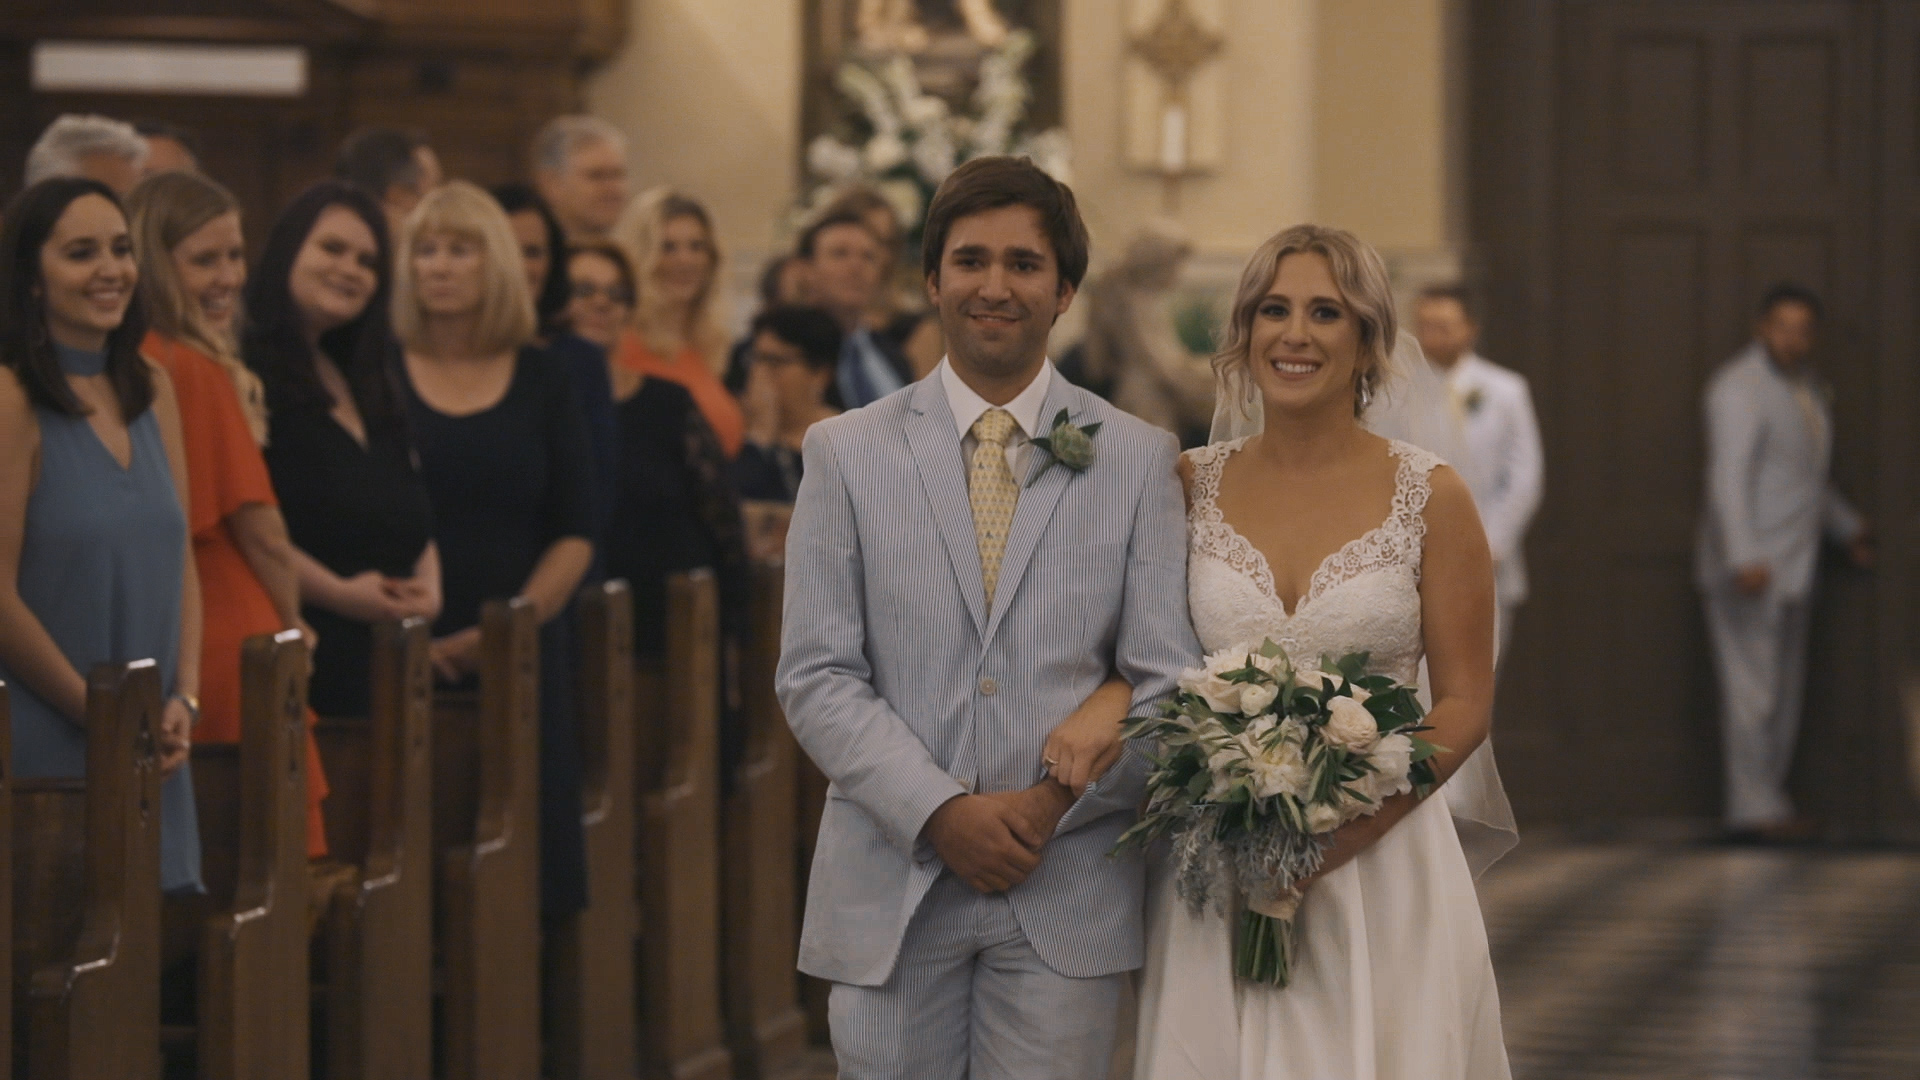 St. Louis Cathedral Wedding - Bride Film